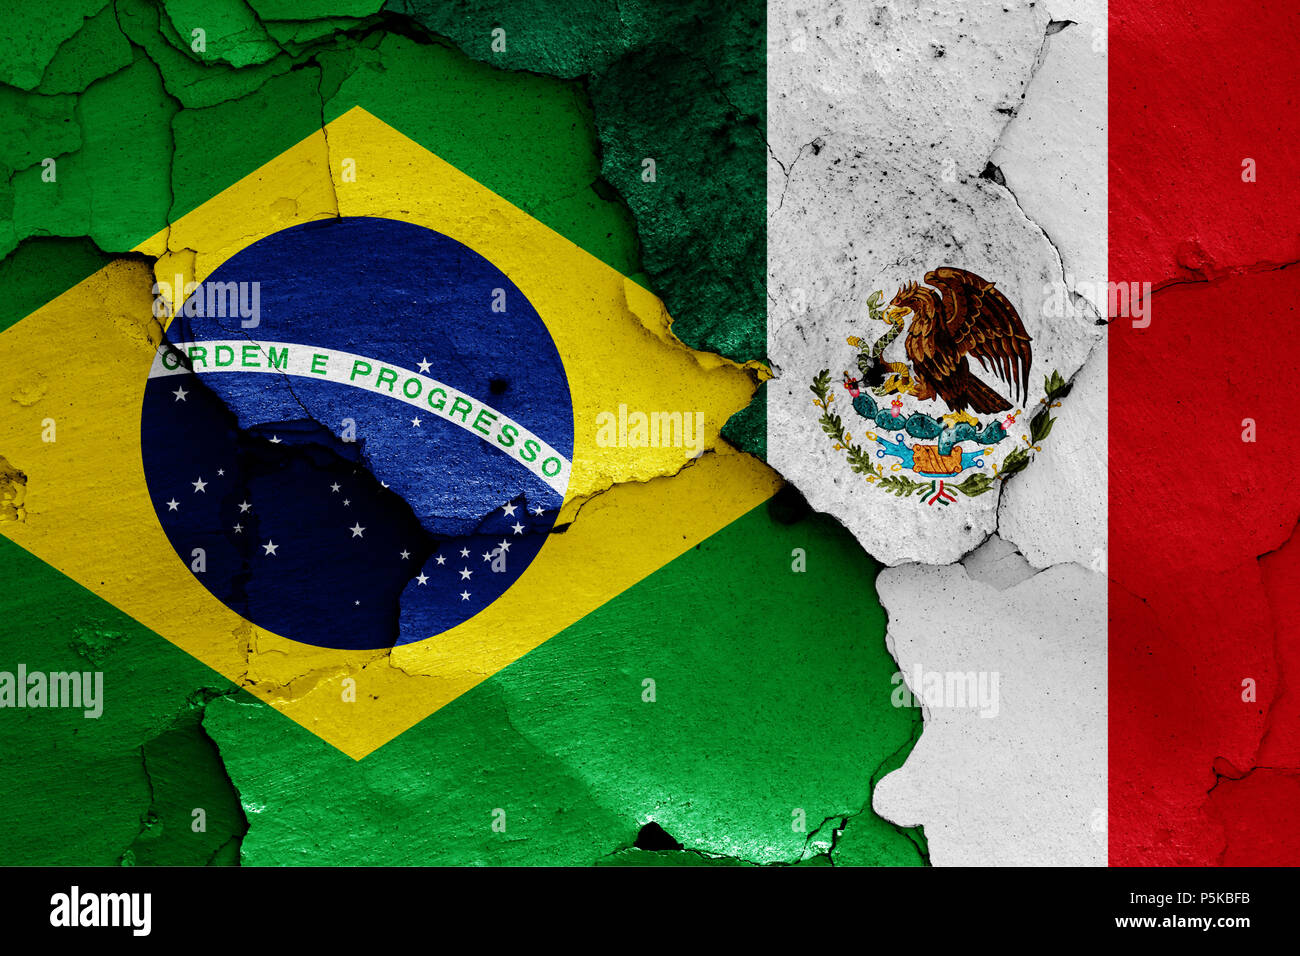 Flags of brazil and mexico stock photo 210023839 alamy flags of brazil and mexico gumiabroncs Choice Image